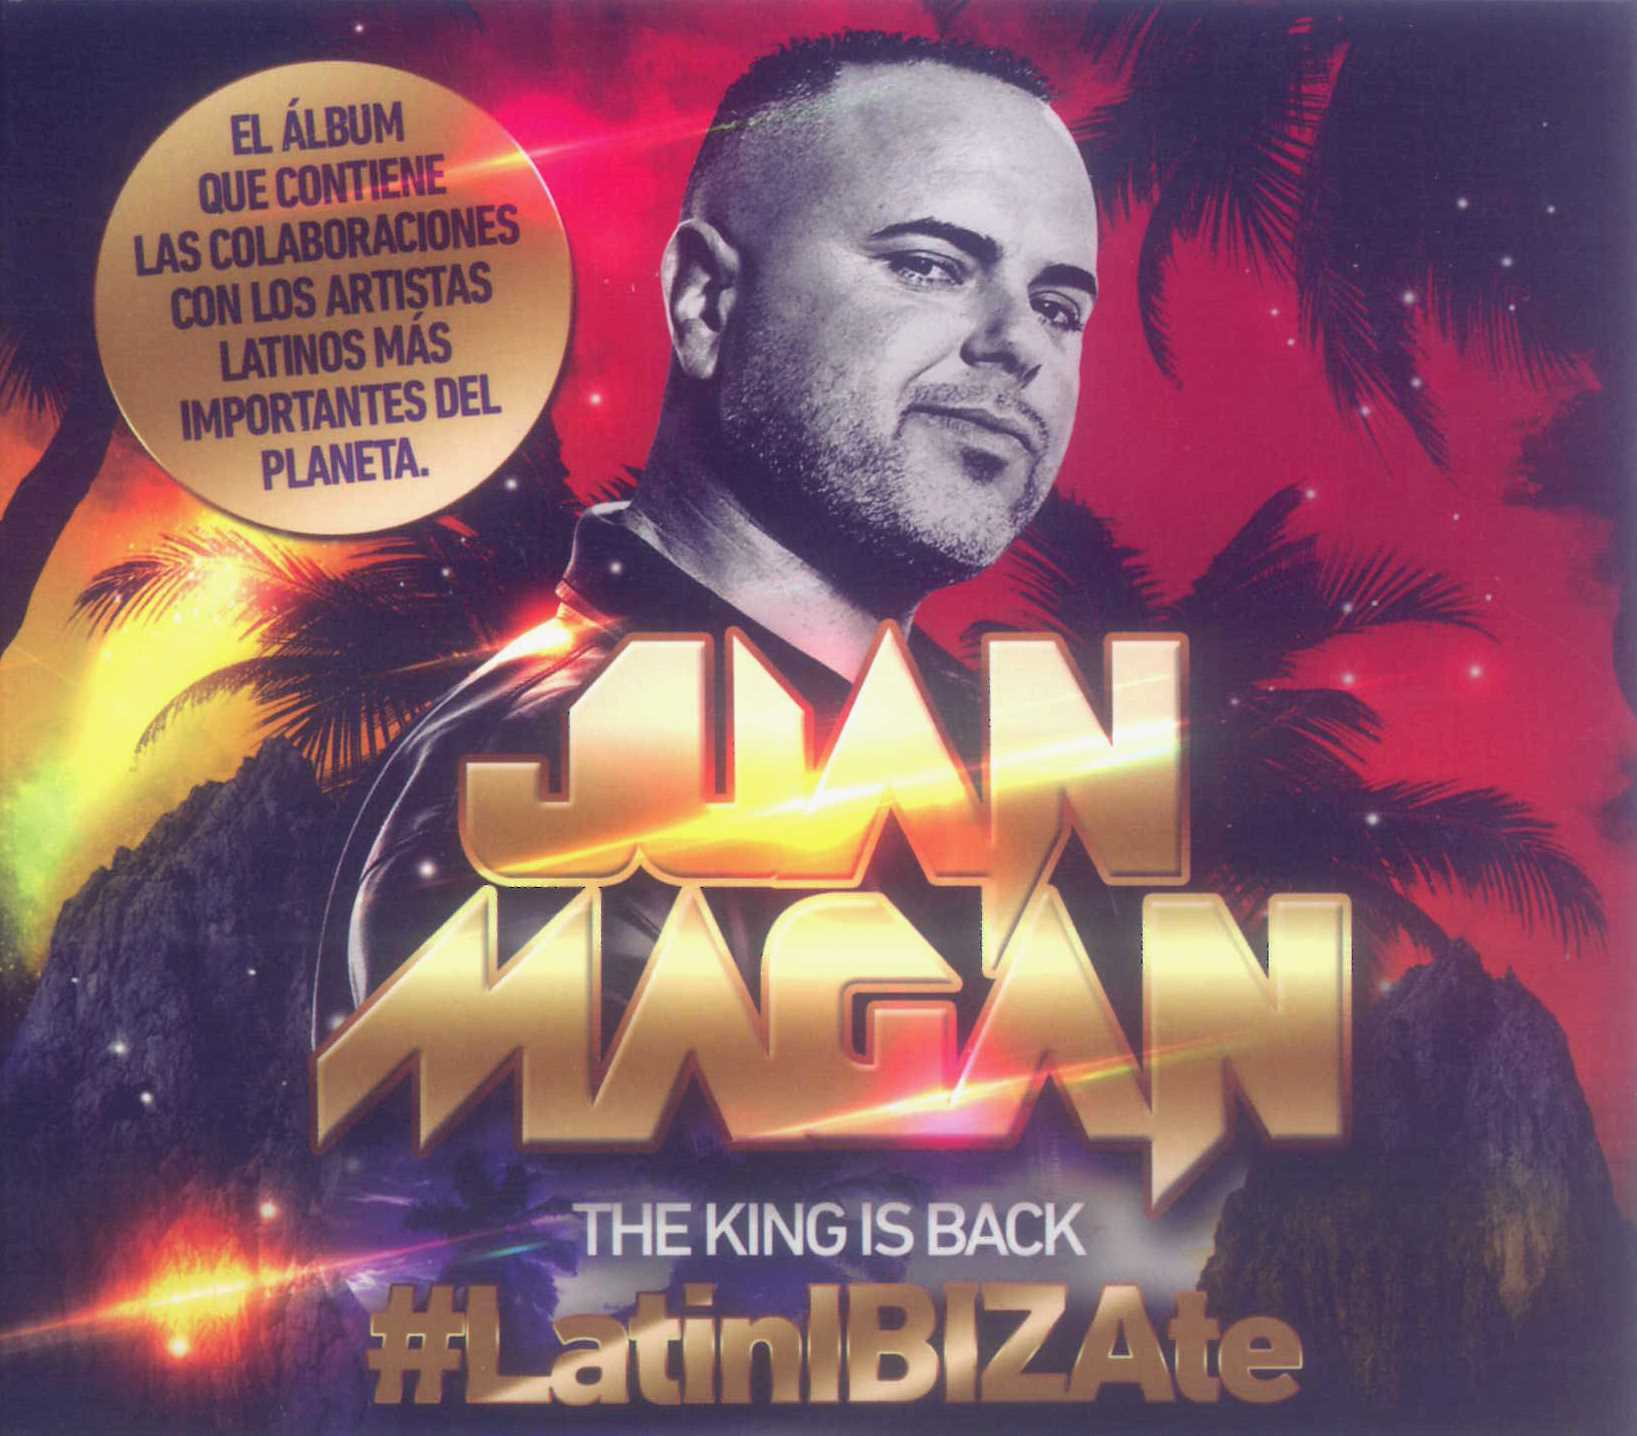 The king is back: #latinIBIZAte